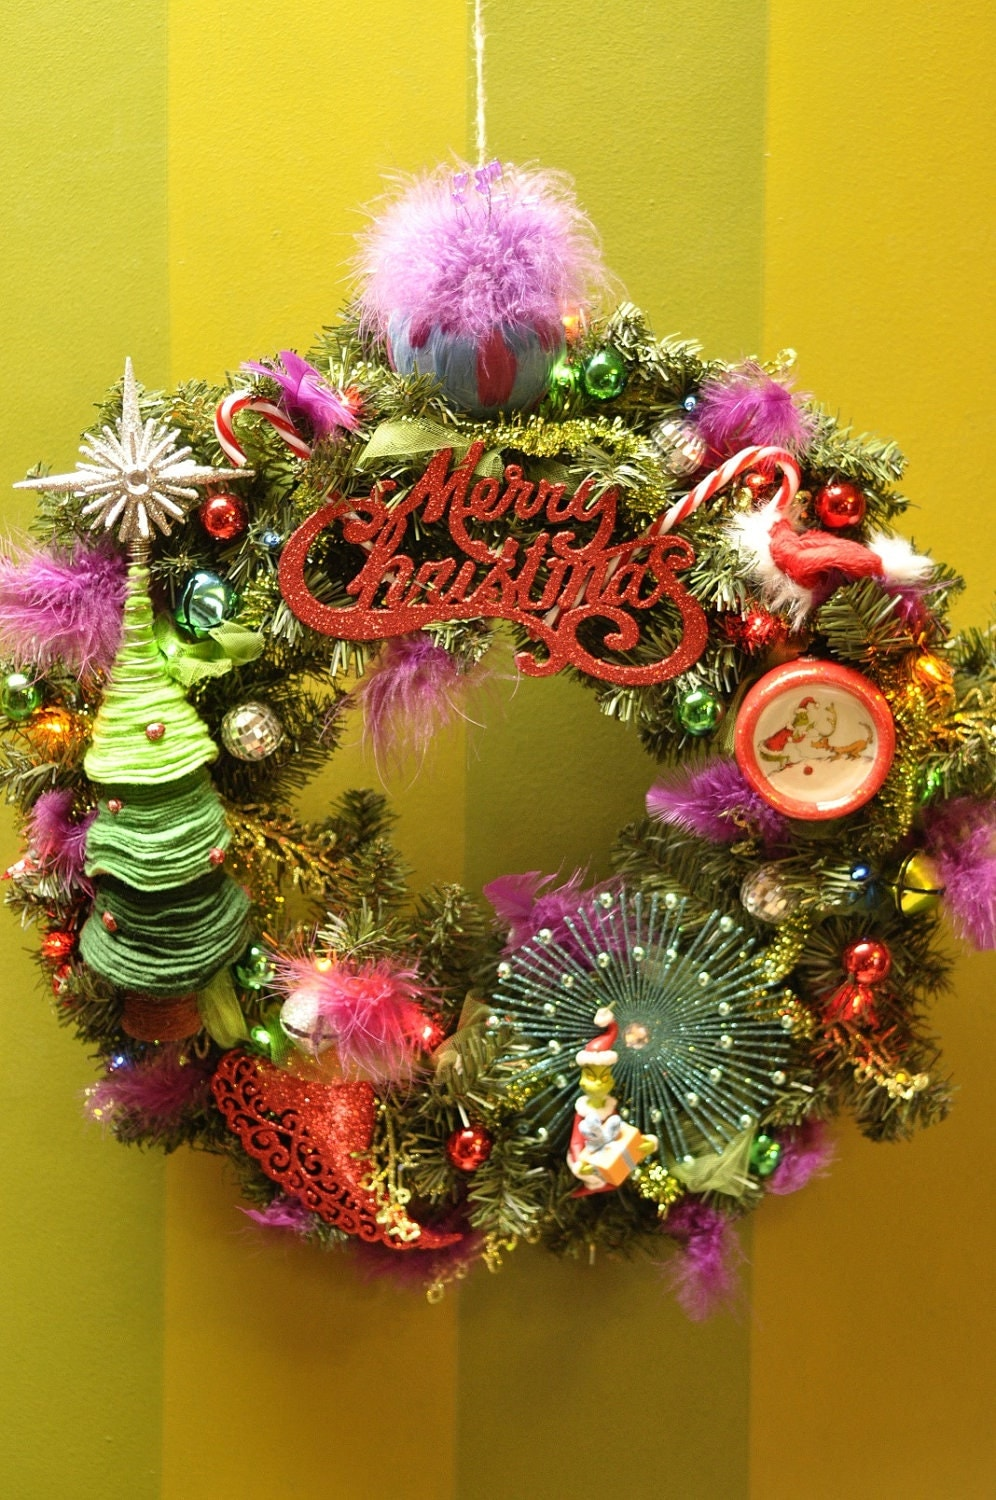 Grinch Christmas Wreath How The Grinch Stole Christmas